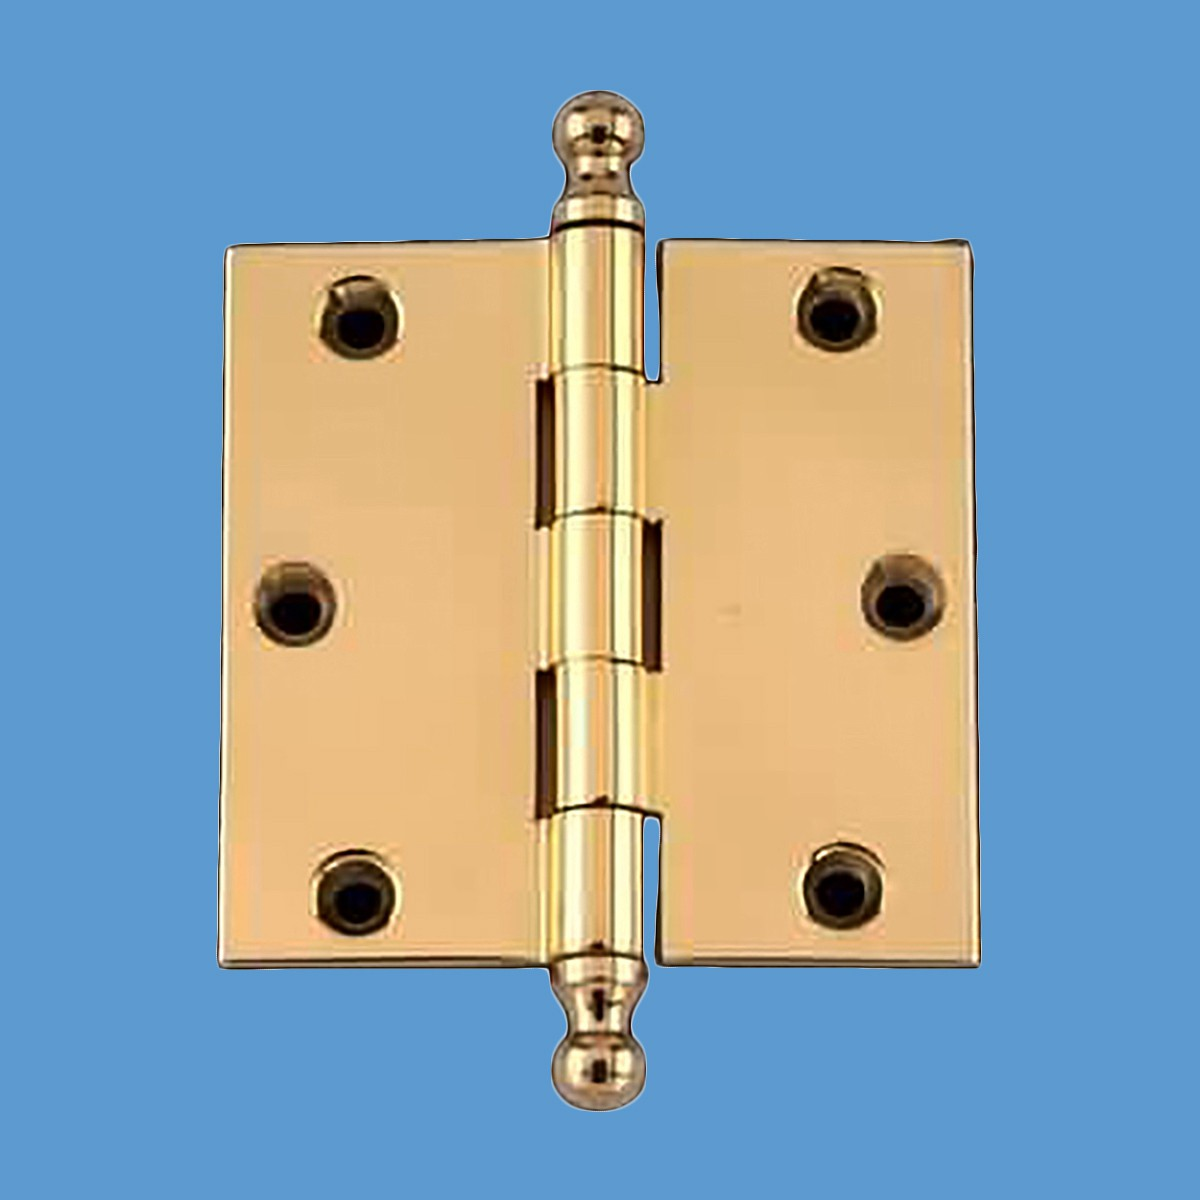 u003cPREu003eDoor Cabinet Hinge 3inch x 3  Square Solid Brass Ball Tip ...  sc 1 st  Renovatoru0027s Supply : ball tip cabinet hinges - Cheerinfomania.Com